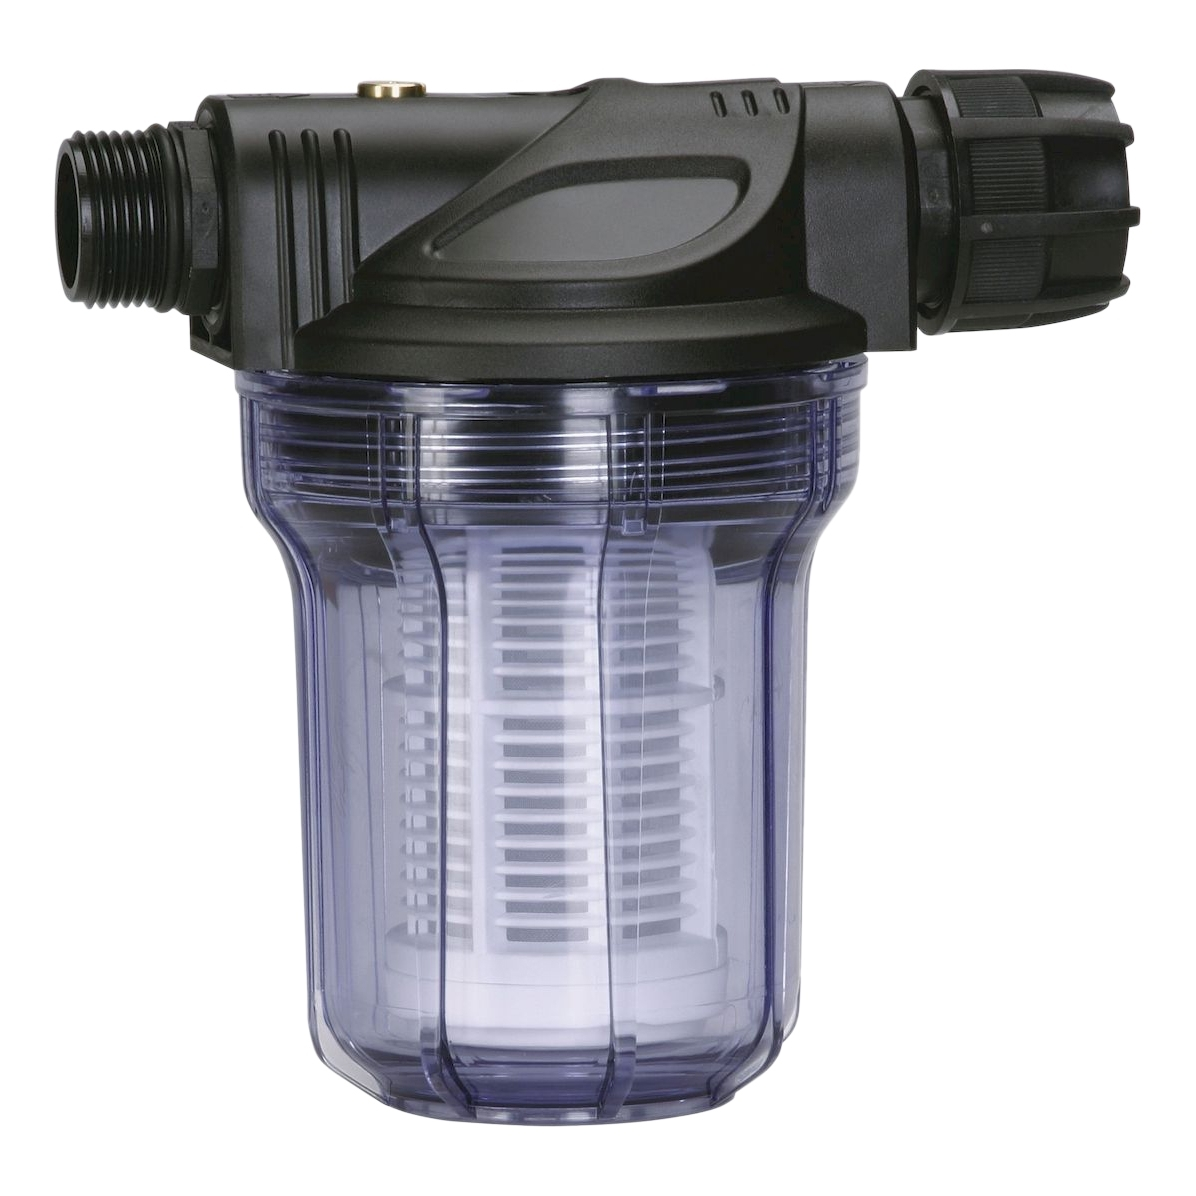 Filter for water purification GARDENA 01731-2000000 велосипед scott contessa solace 15 compact 2015